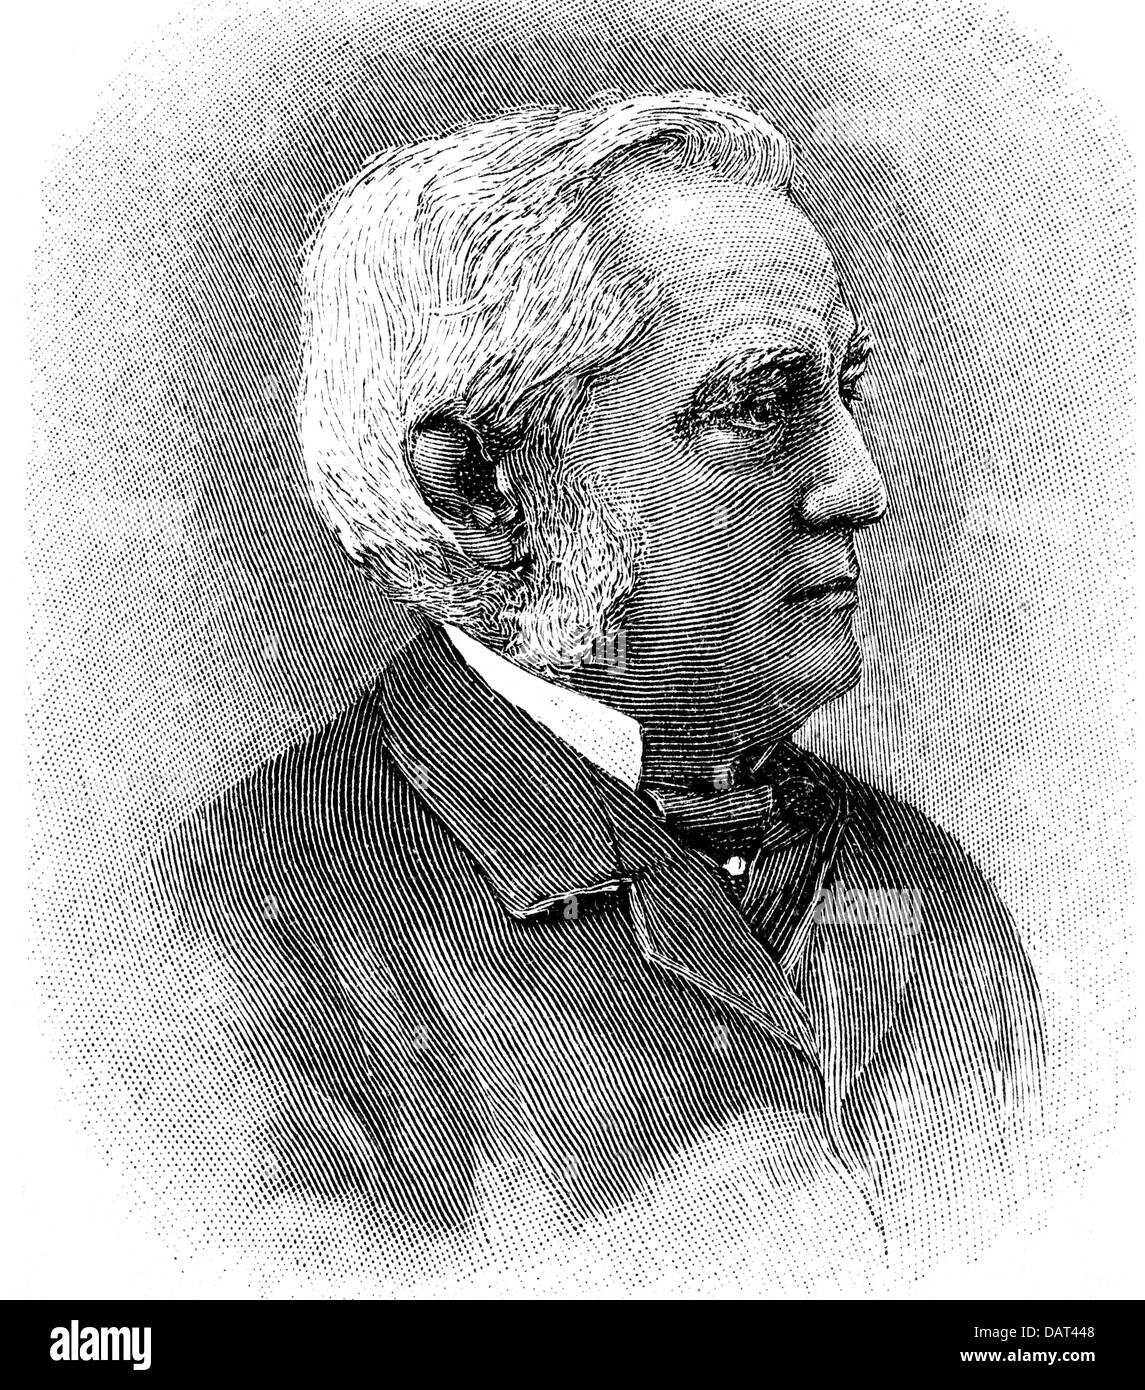 Mueller, Friedrich Max, 6.12.1823 - 28.10.1900, German indologist and religious scholar, portrait, wood engraving, - Stock Image